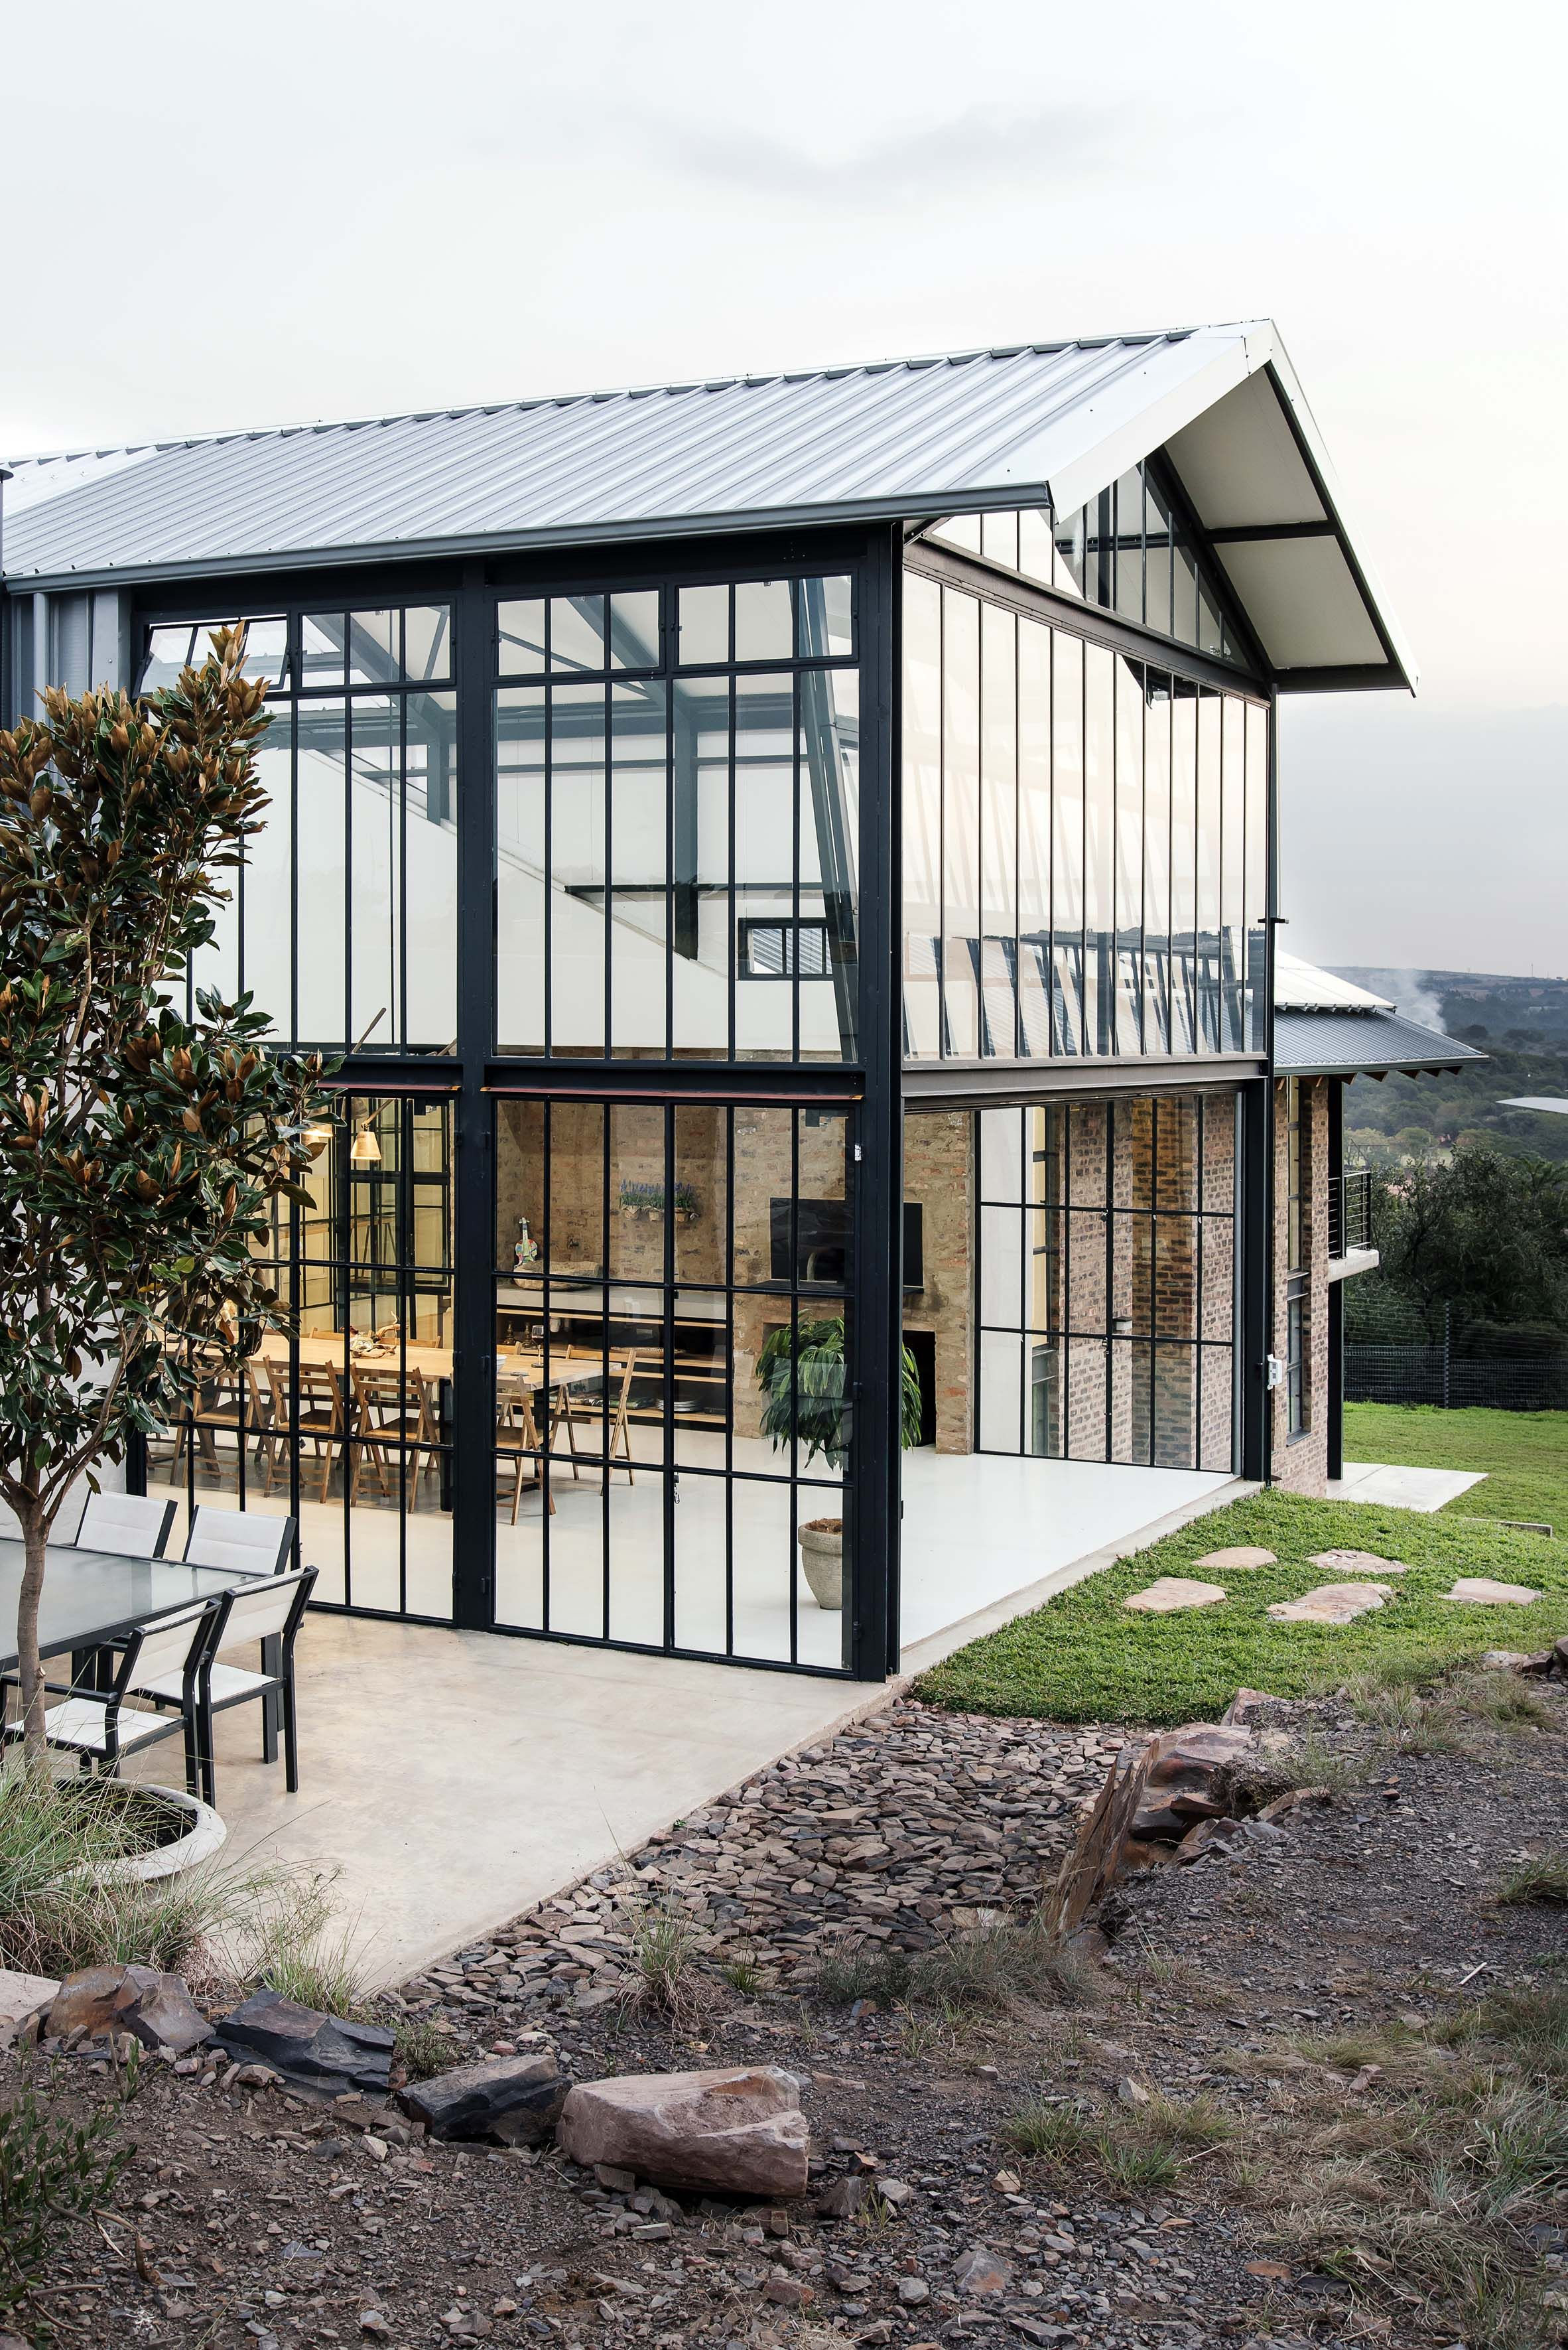 Conservatory house by nadine englebrecht in south africa